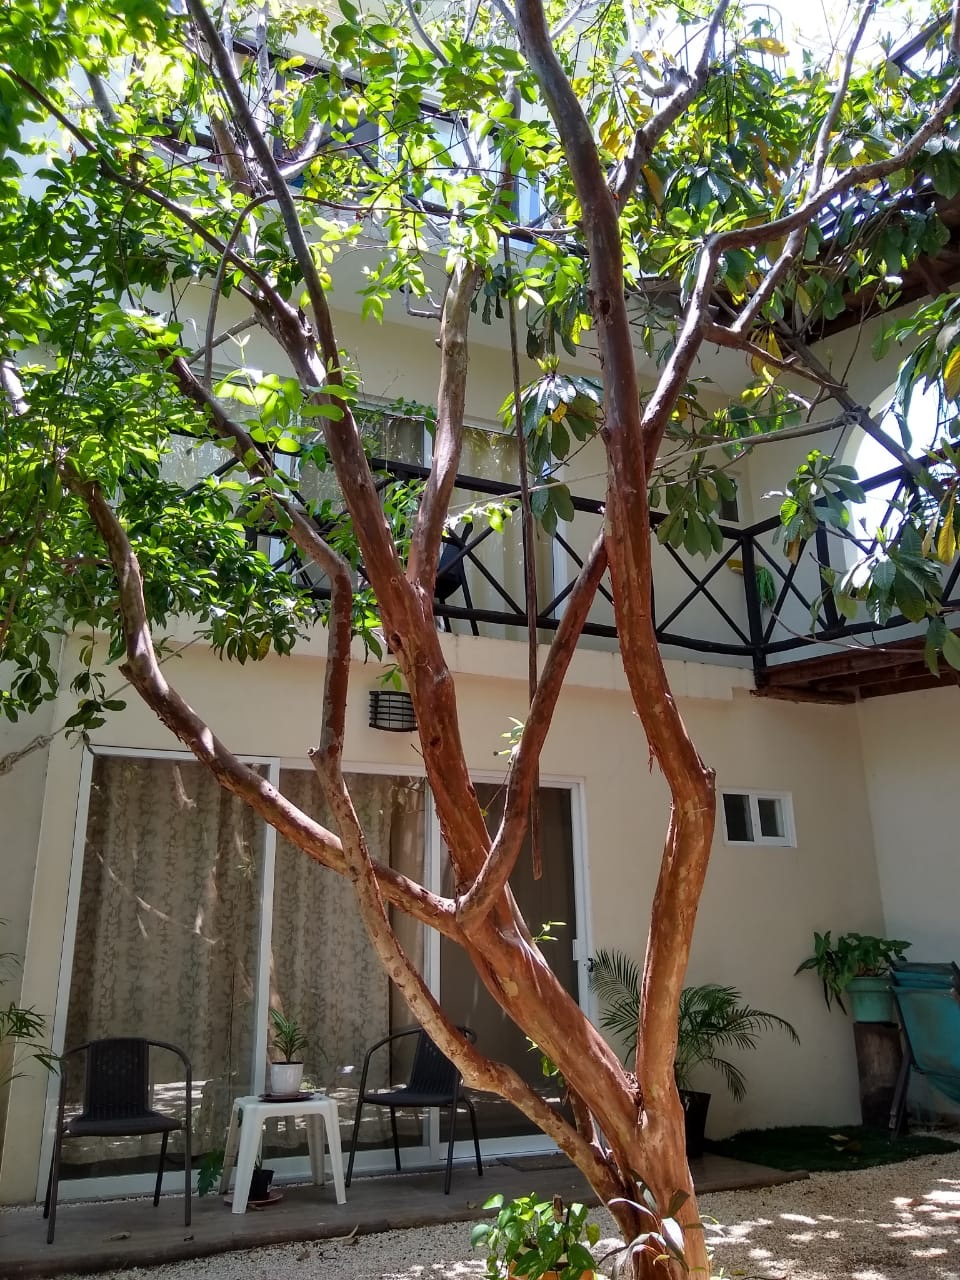 Investment opportunity in charming 6 condos surrounded by nature